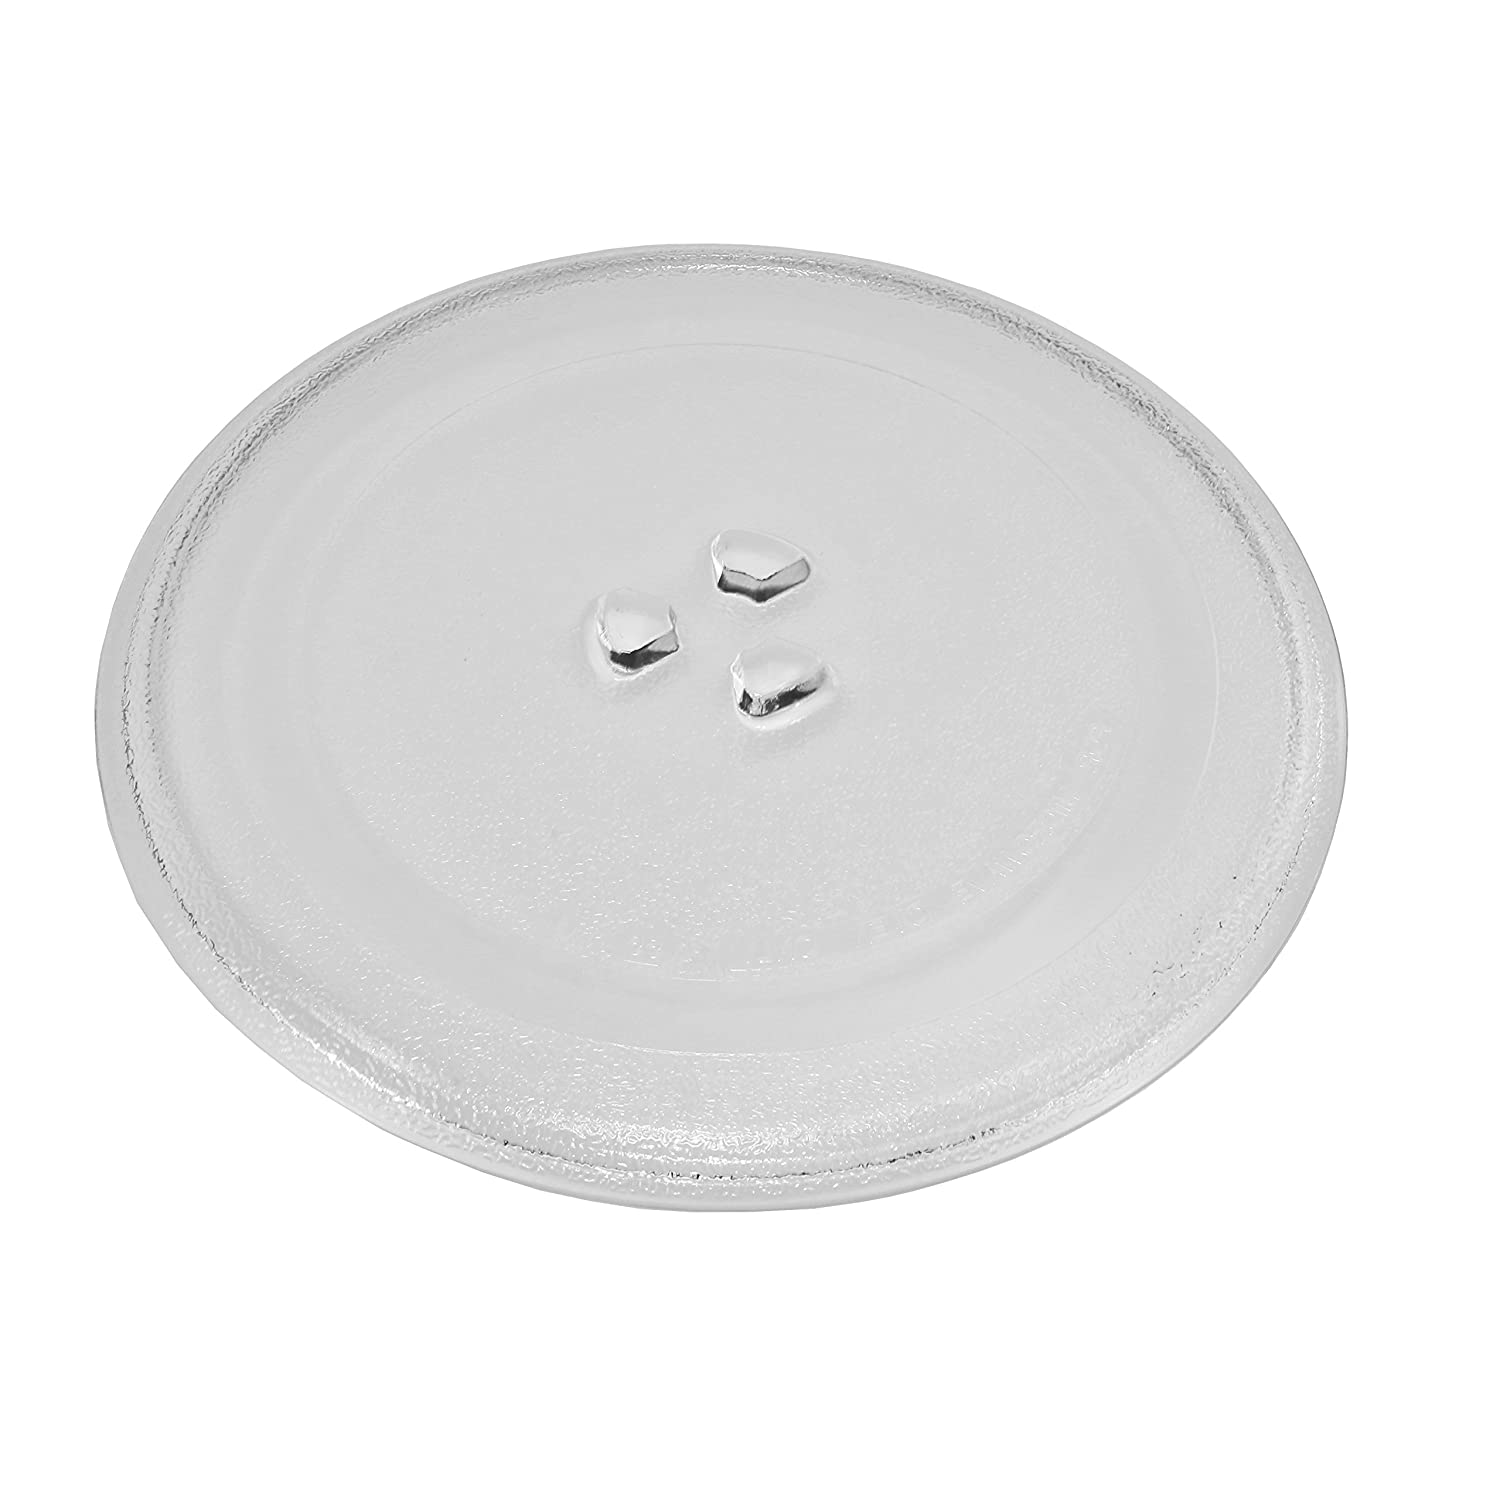 "Microwave Glass Turntable Plate 9.5"" or 245mm Designed to Fit Several Models"